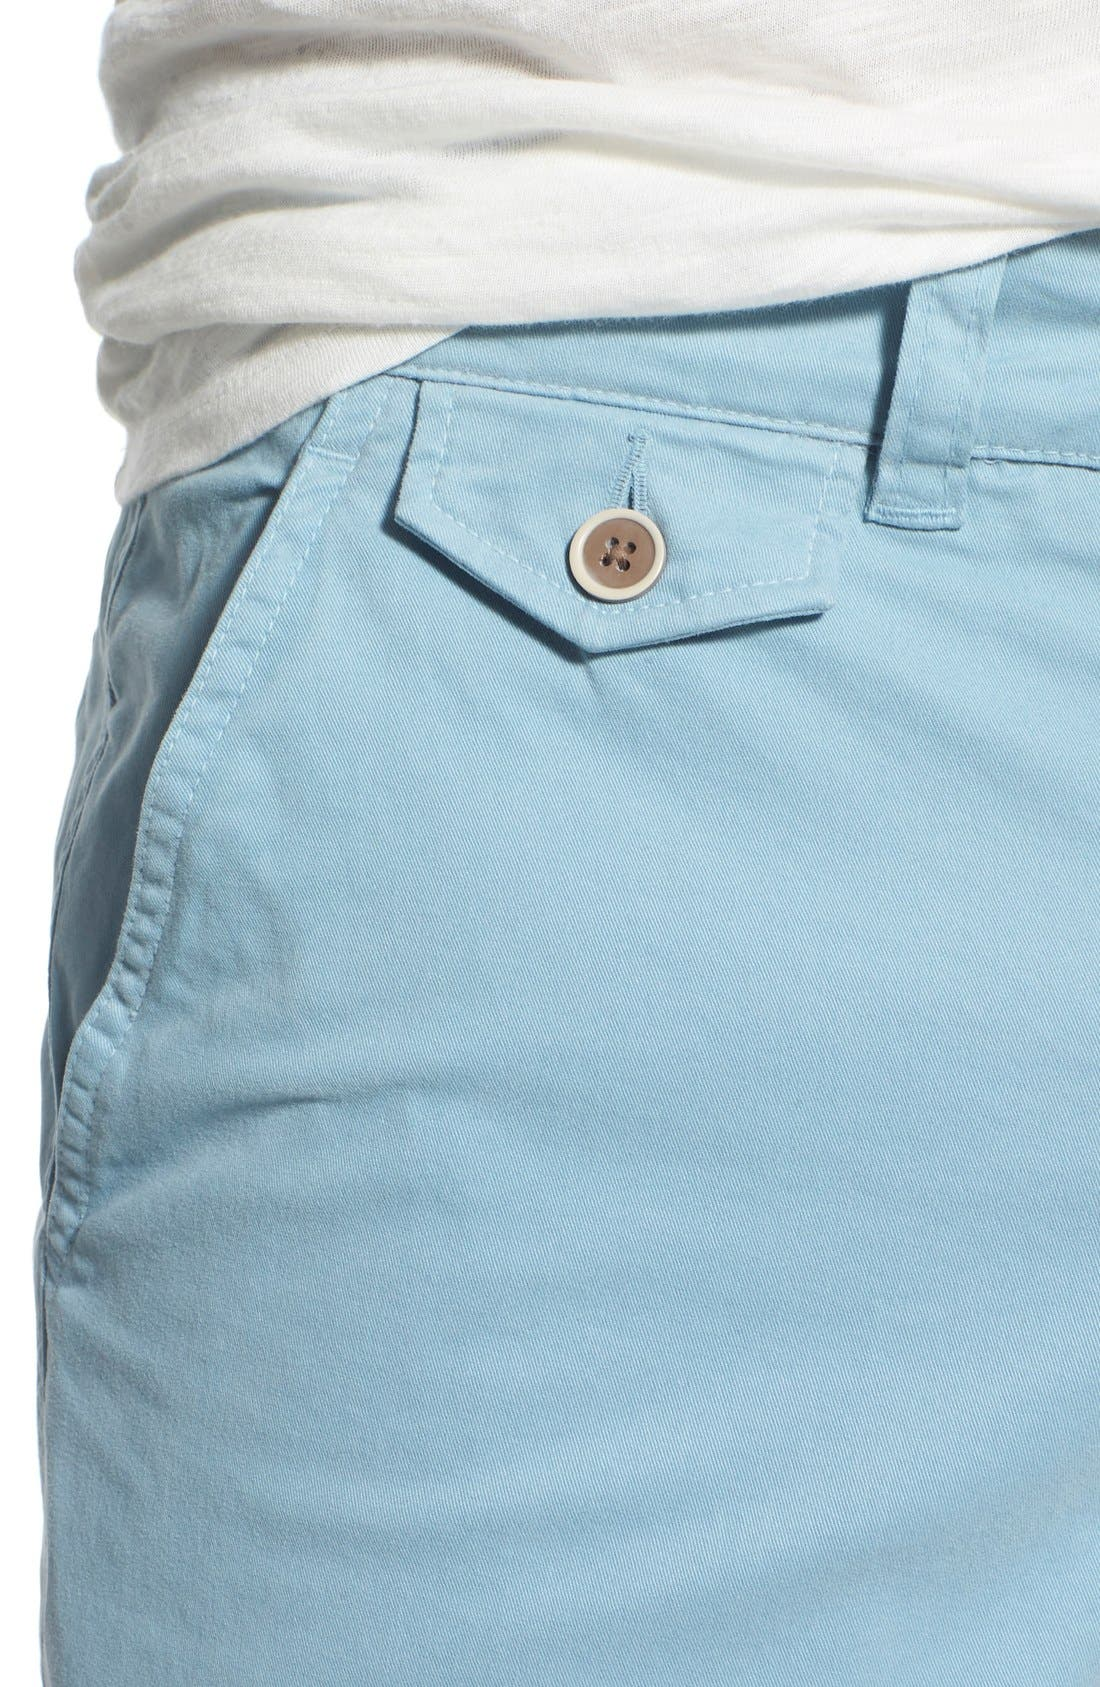 'Sunny' Stretch Twill Chino Shorts,                             Alternate thumbnail 24, color,